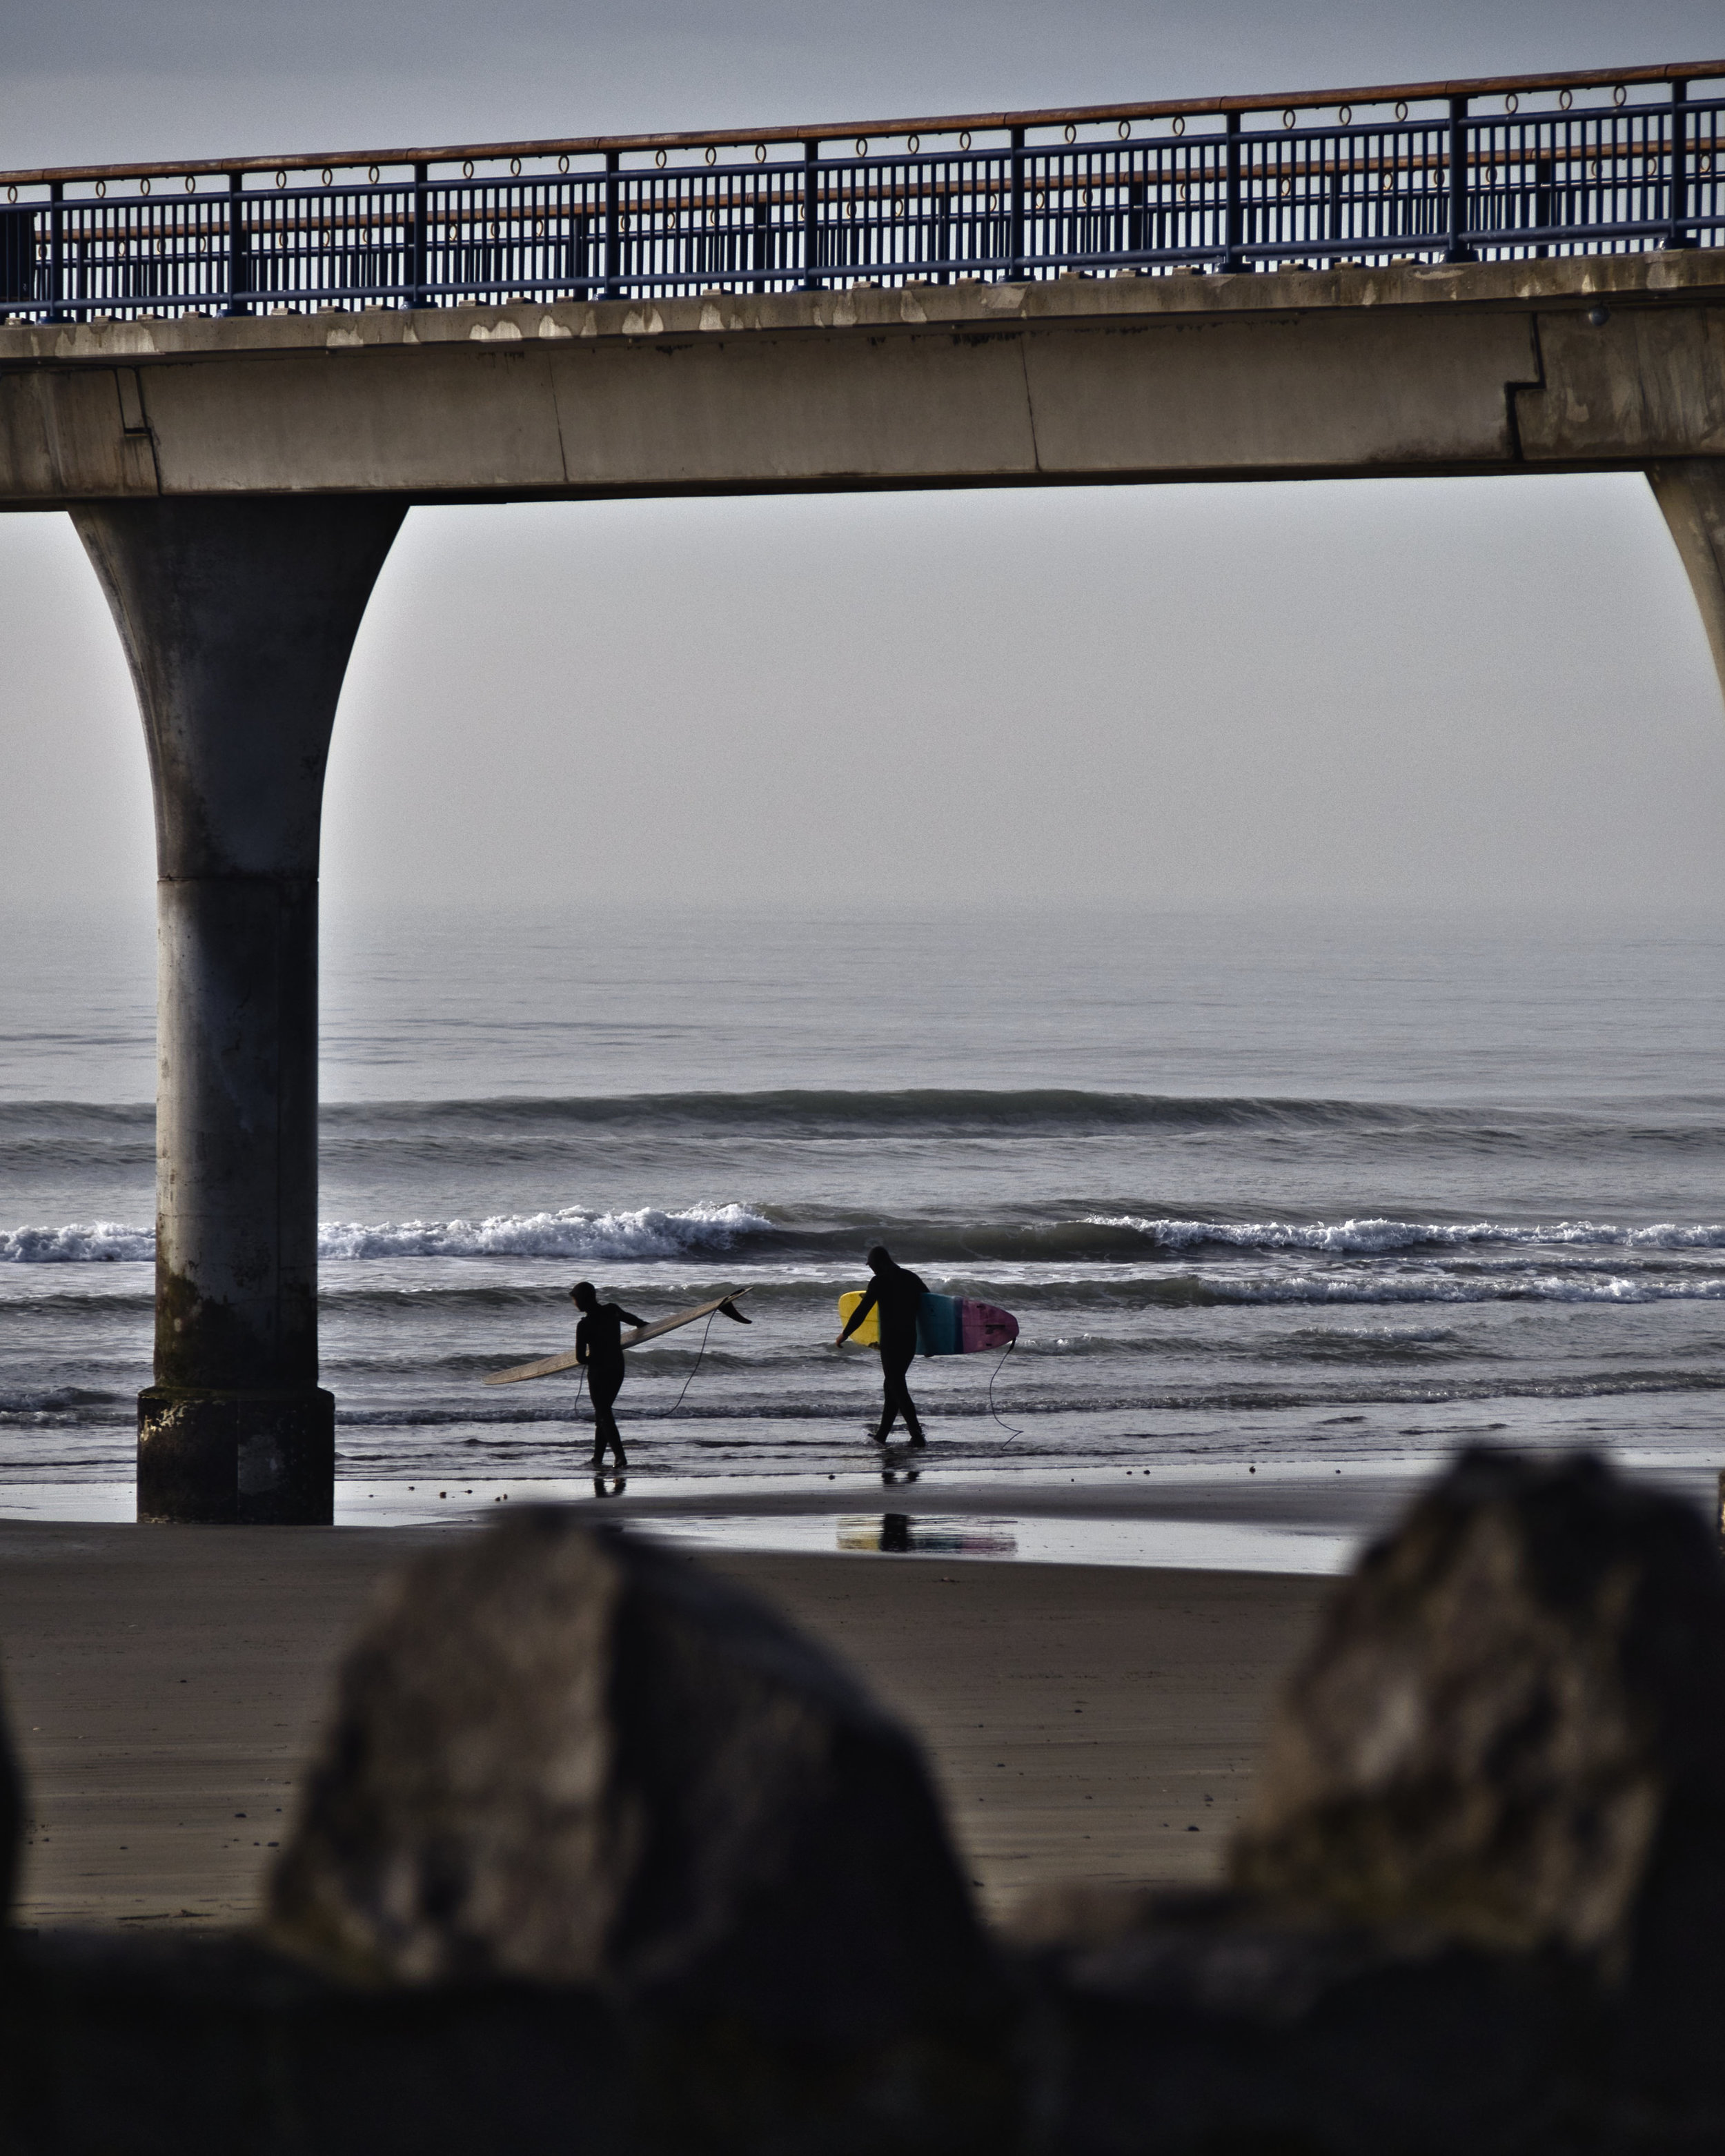 Two dedicated surfers make their way out to the beach break beneath New Brighton Pier on this Christchurch beach on a chilly July morning.